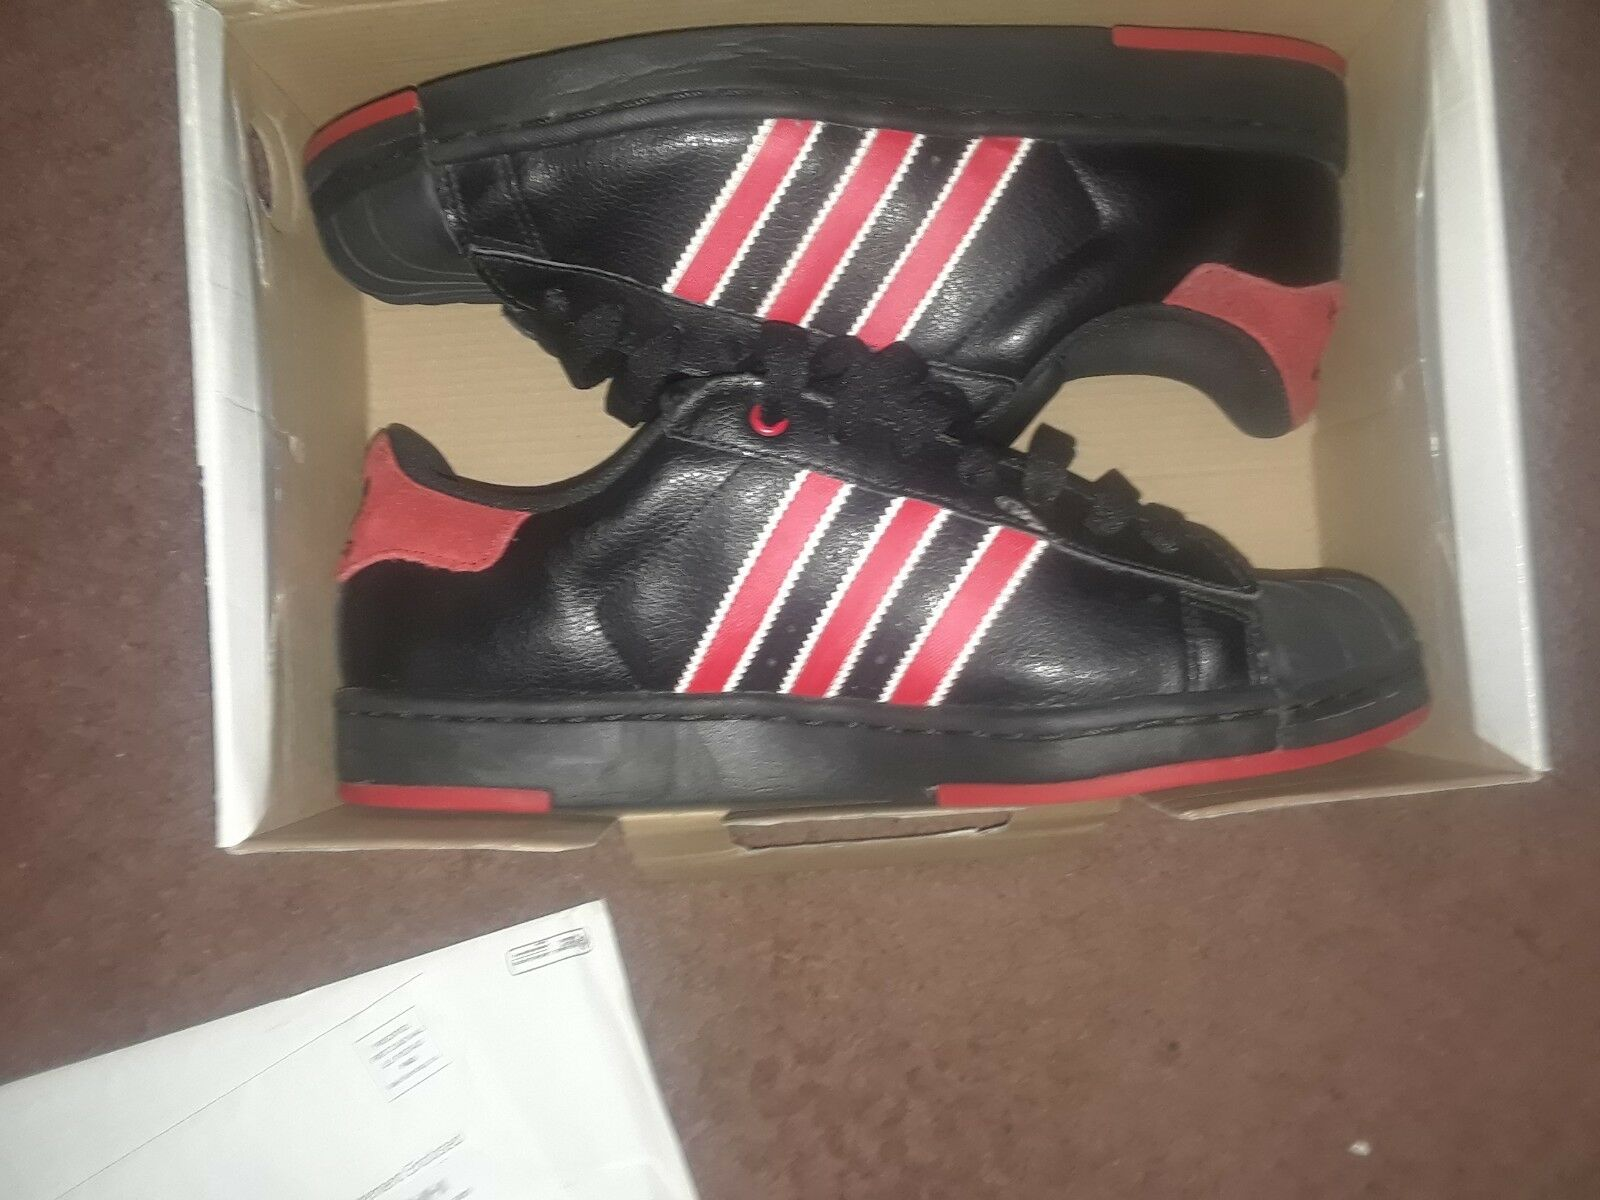 MEN'S ADIDAS SUPERSTAR FOUNDATION SHOES BLACK RED gold SHELL TOE. TRIED ON ONCE